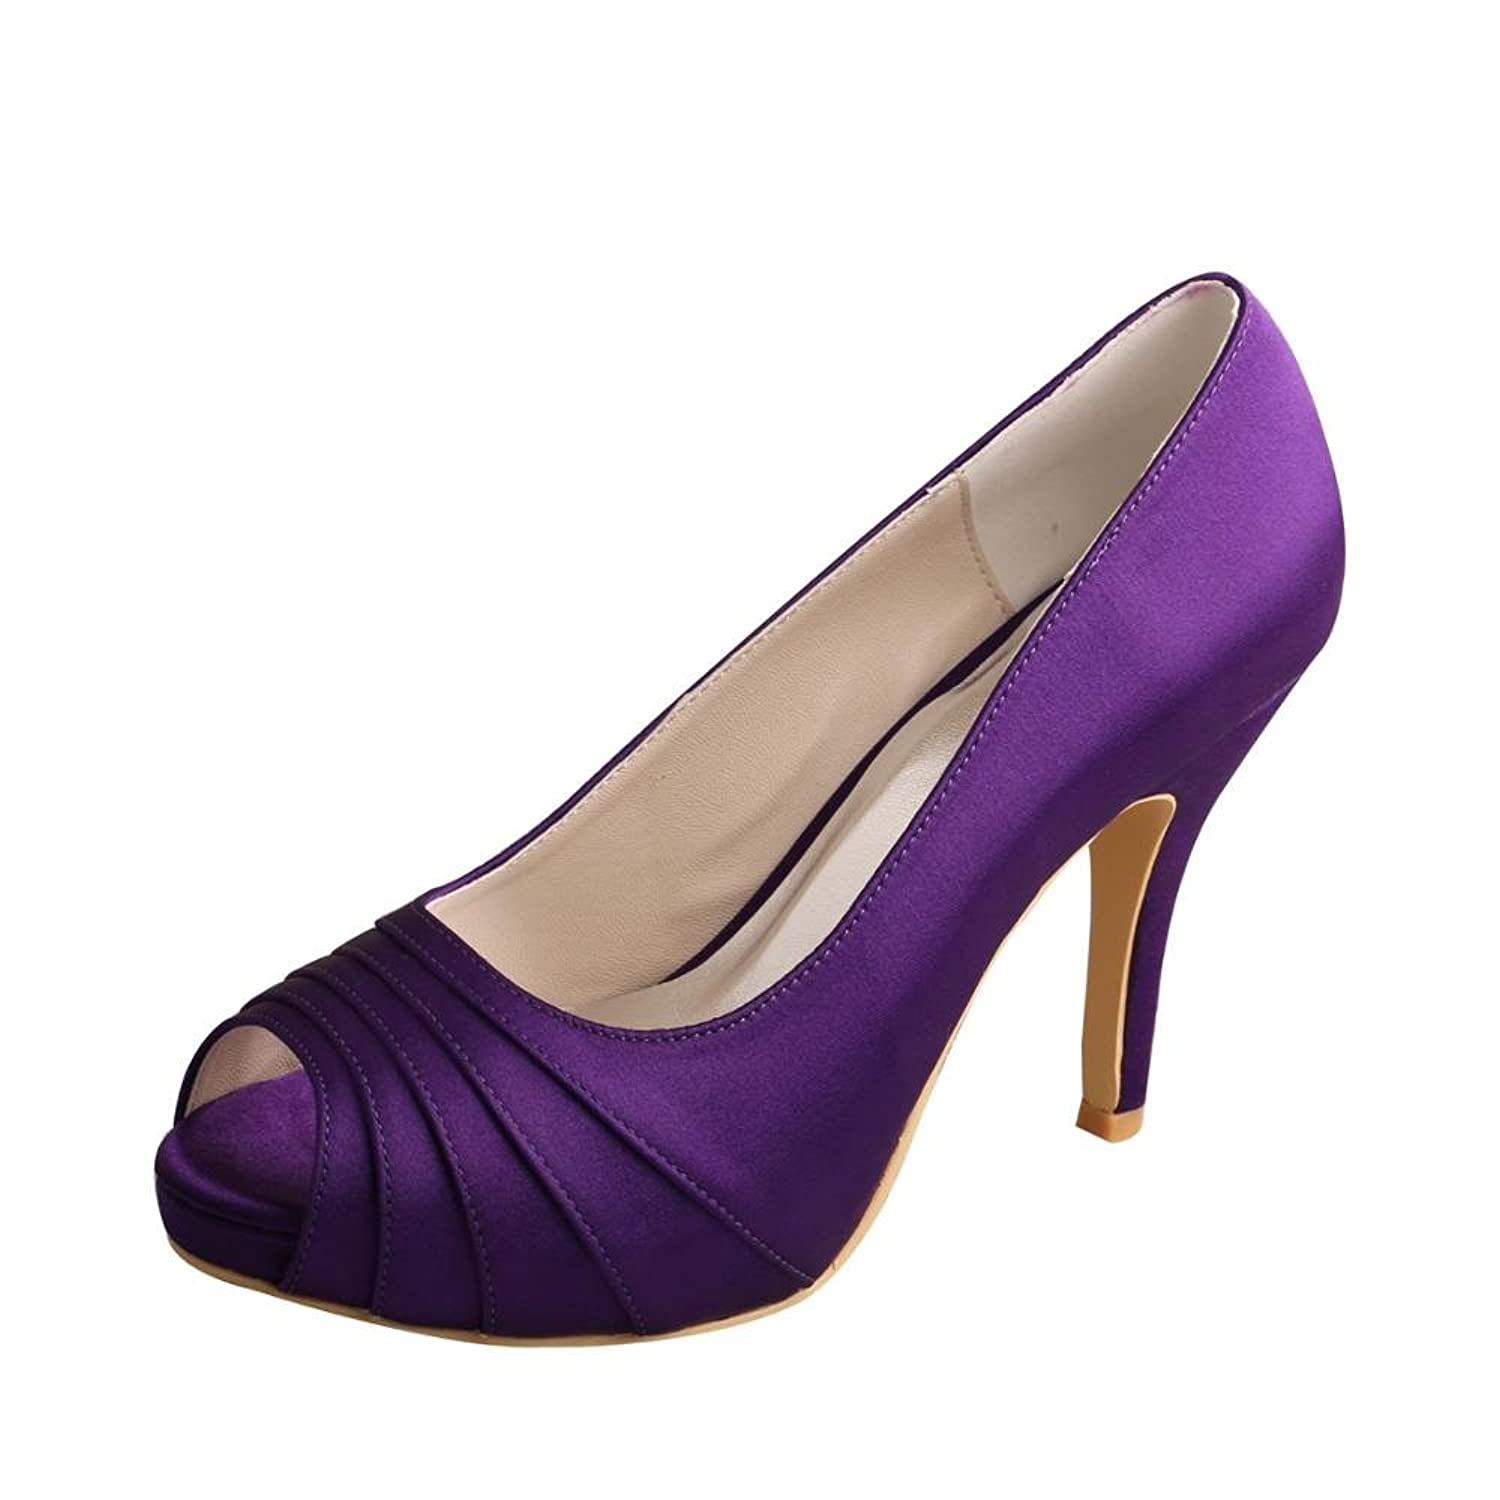 Wedopus MW1491 Womens Peep Toe Pleated High Heel Purple Wedding Bridesmaid Shoes B01J5UT7B8 8 B(M) US